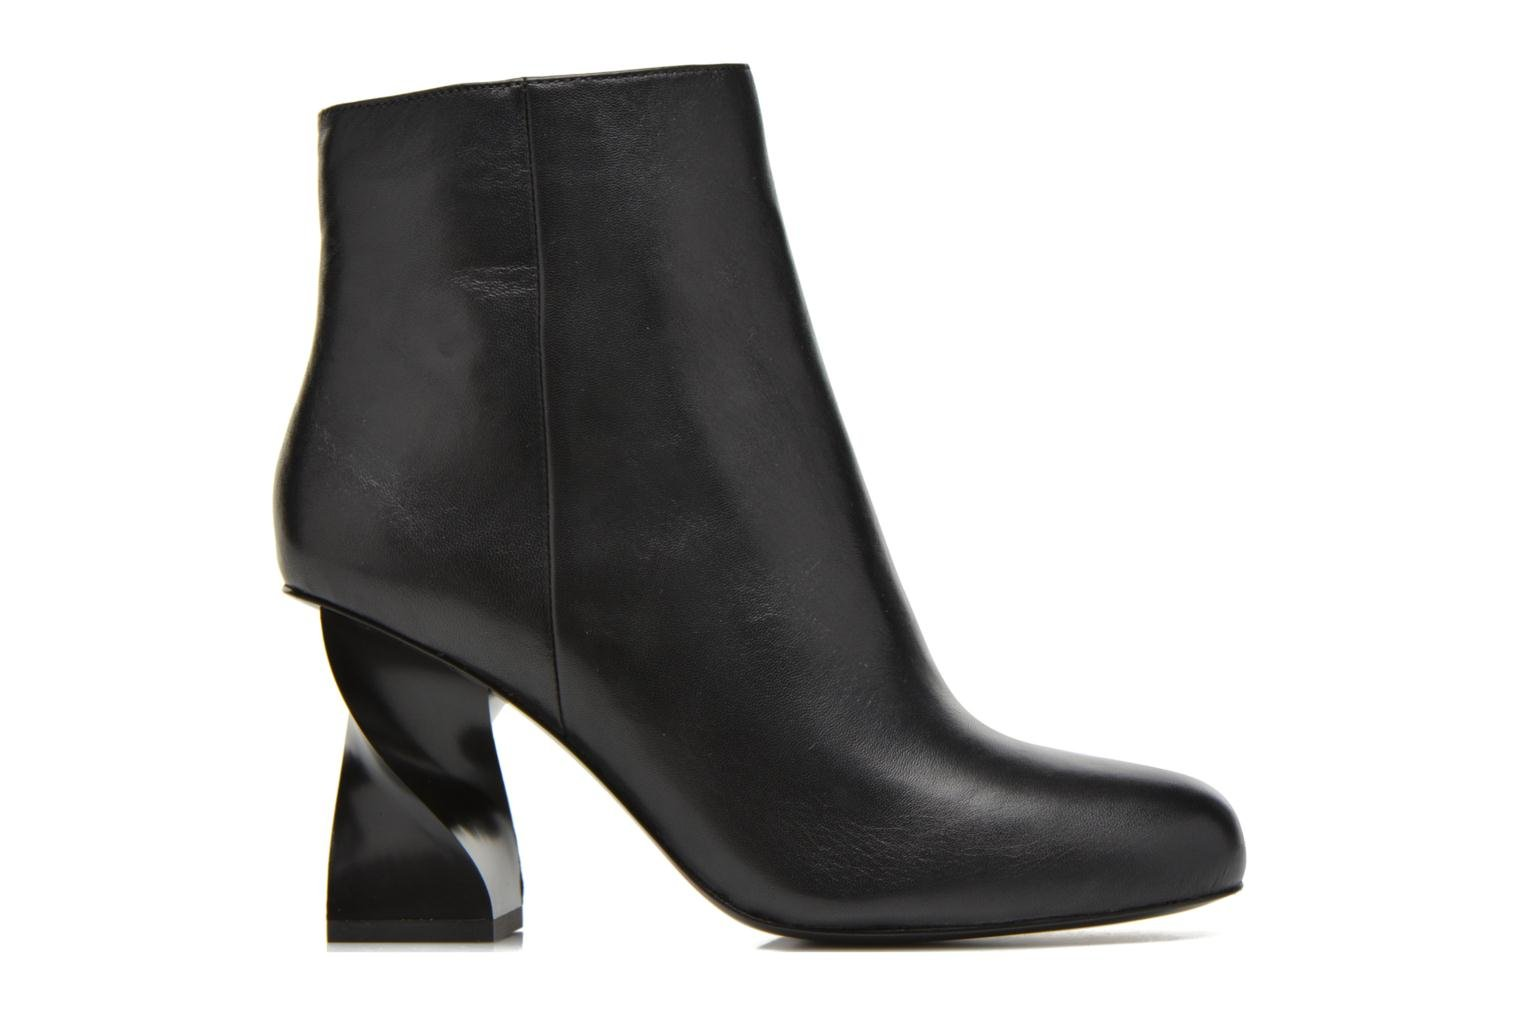 ELOYSE TWISTED HIGH HEEL BOOTIE Black